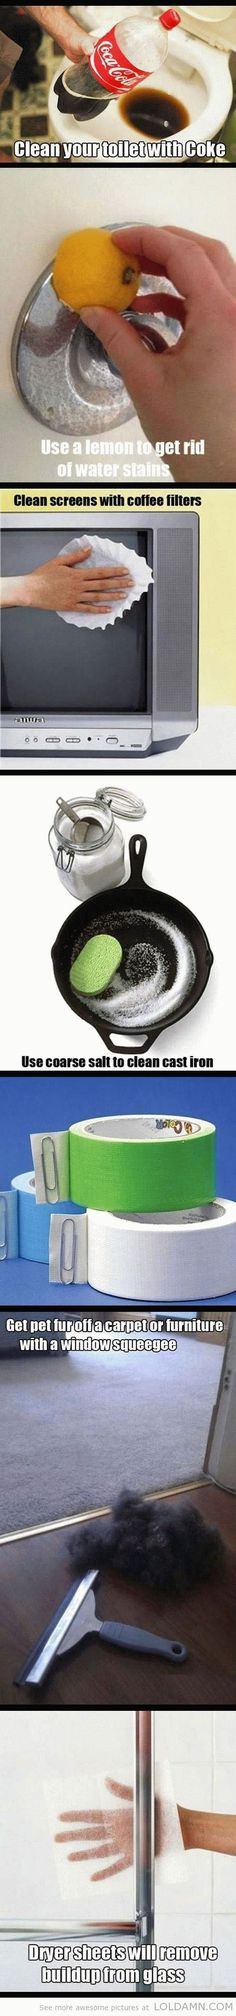 8 awesome cleaning tips1